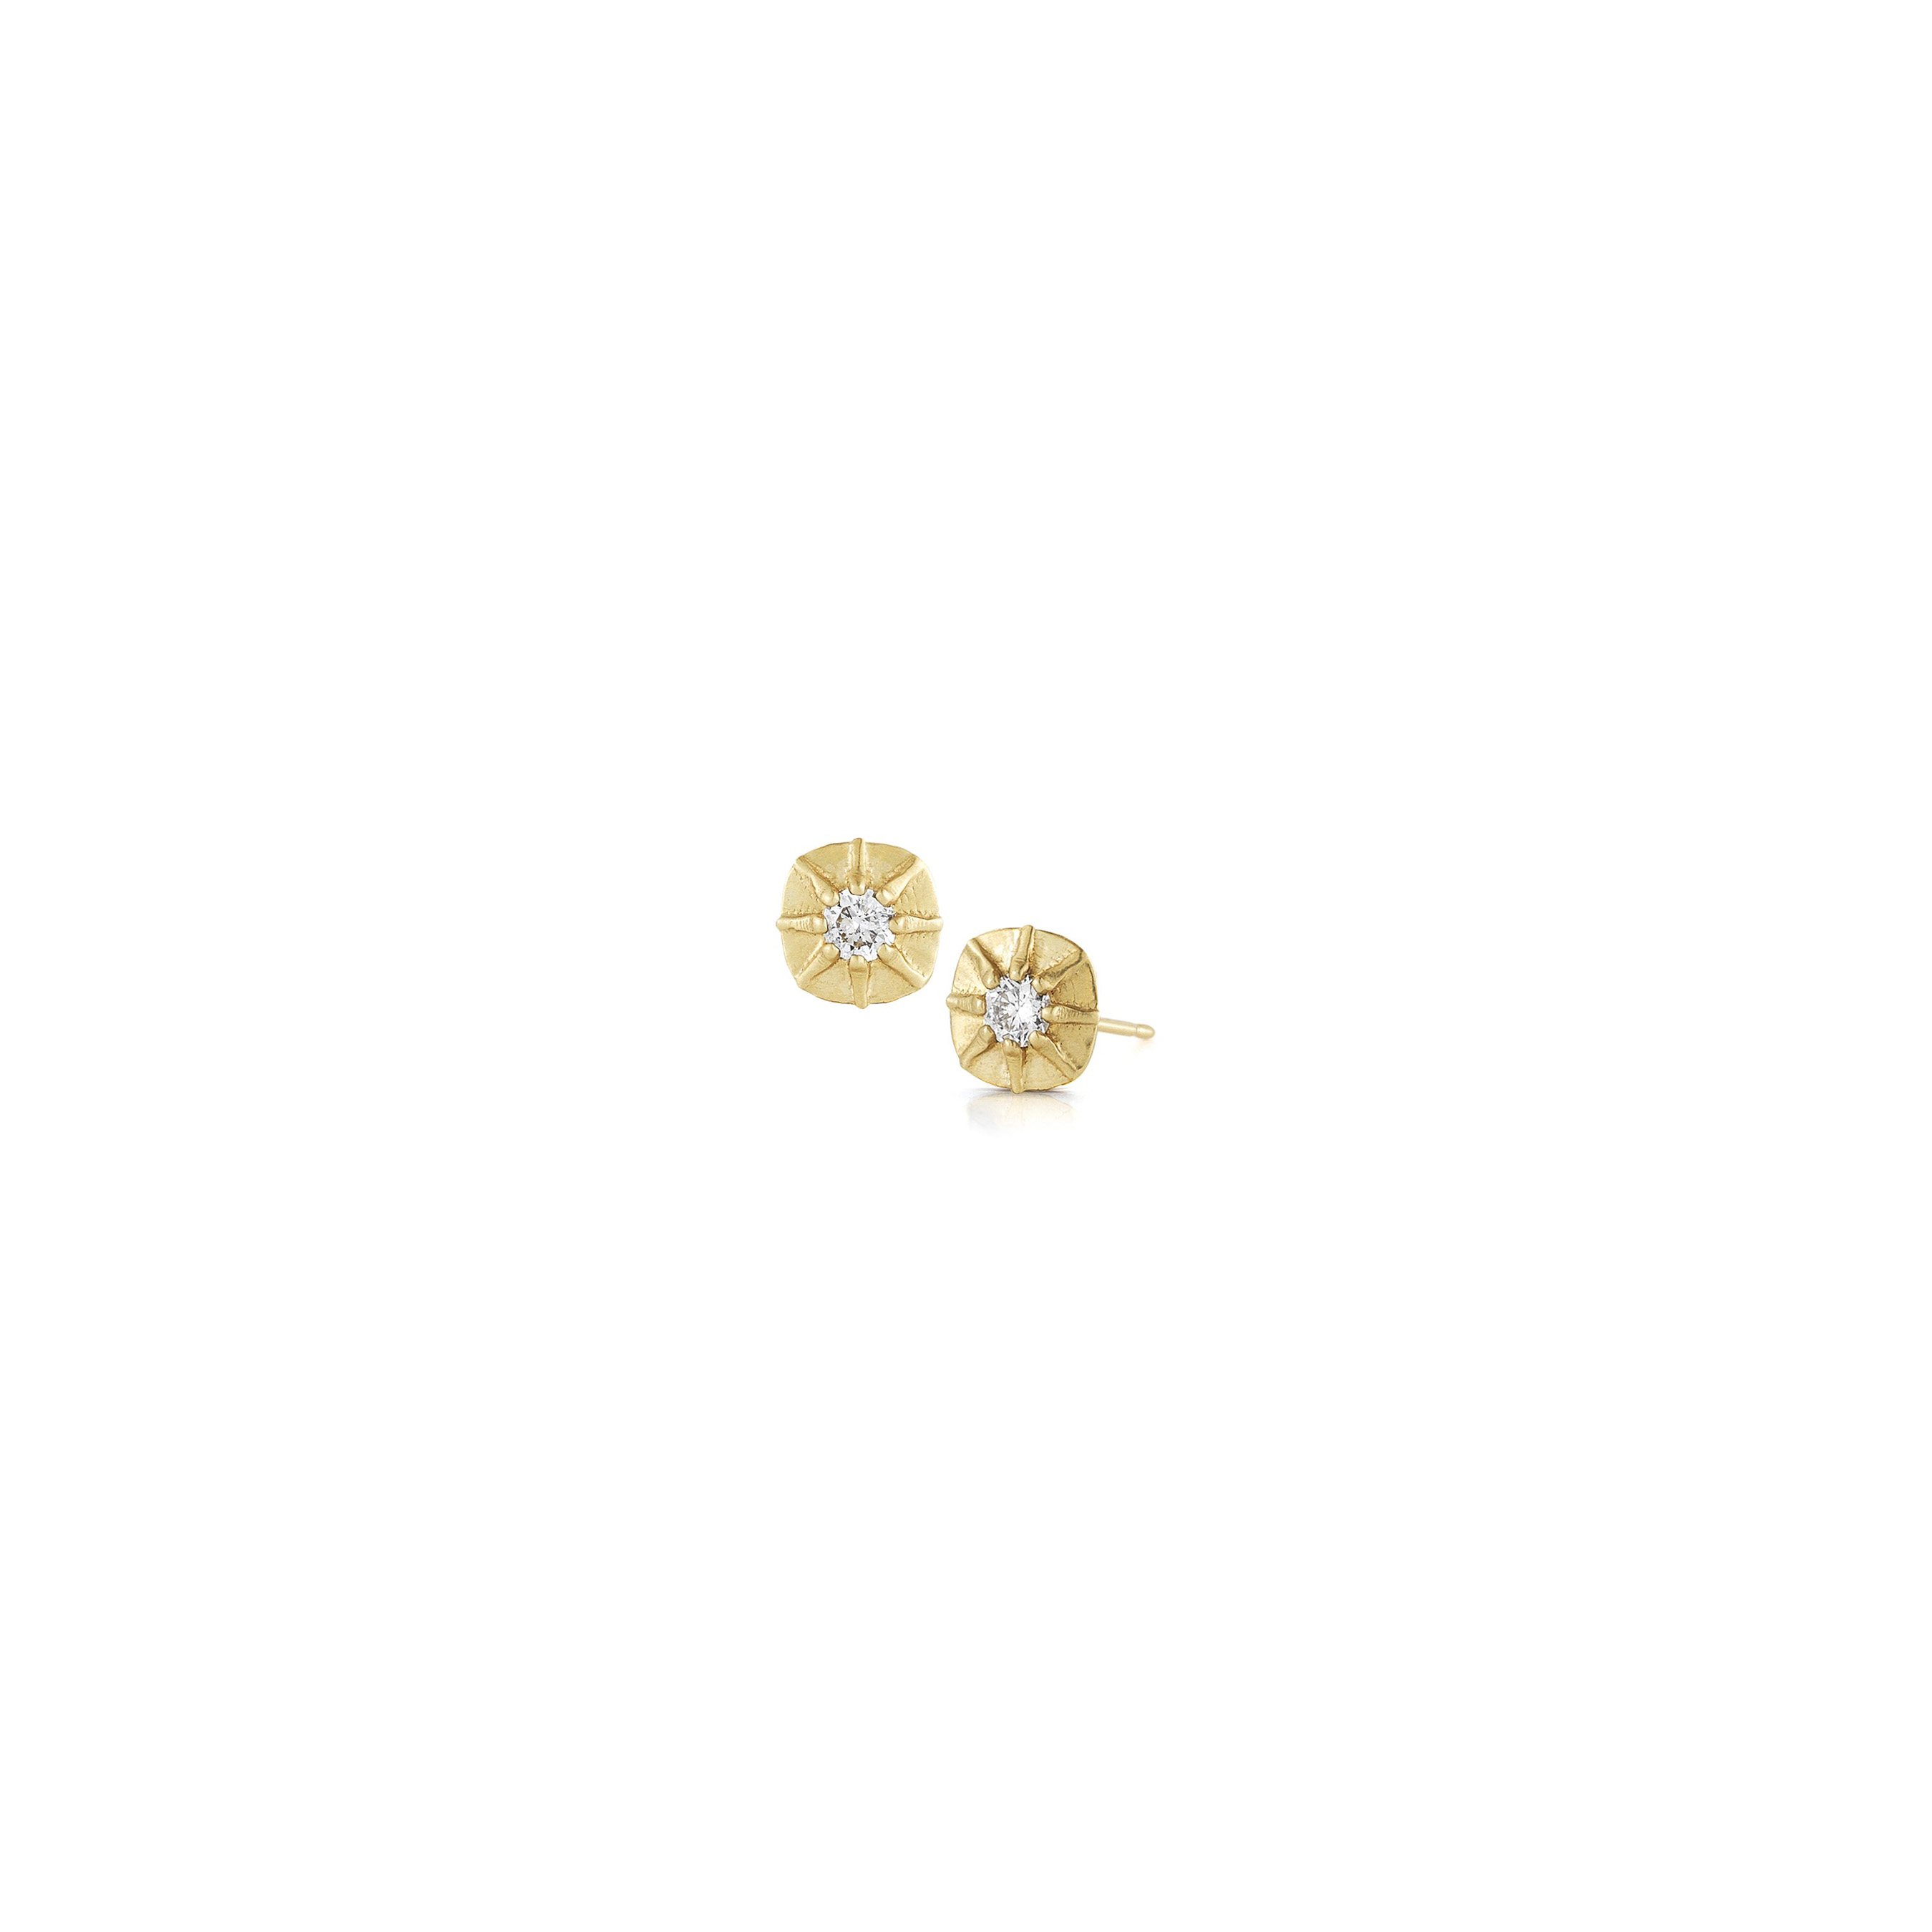 diamonds sister gjenmi white diamond real earrings gold and store post bespoke